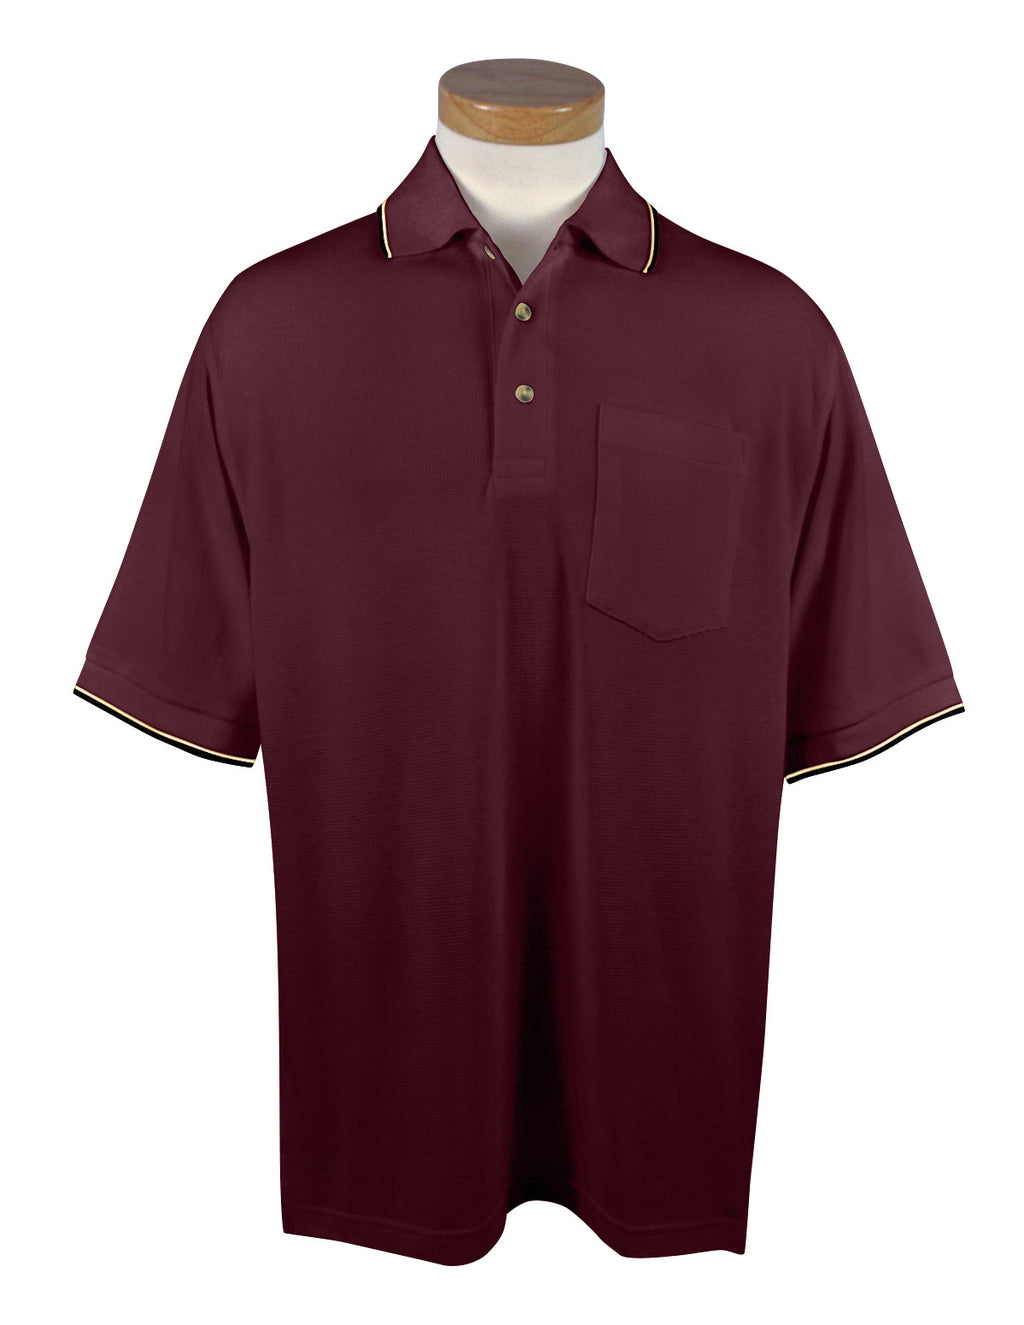 Tri-Mountain Men's 7.8Oz. 60% Cotton/40% Polyester Golf Shirt With Pocket-1